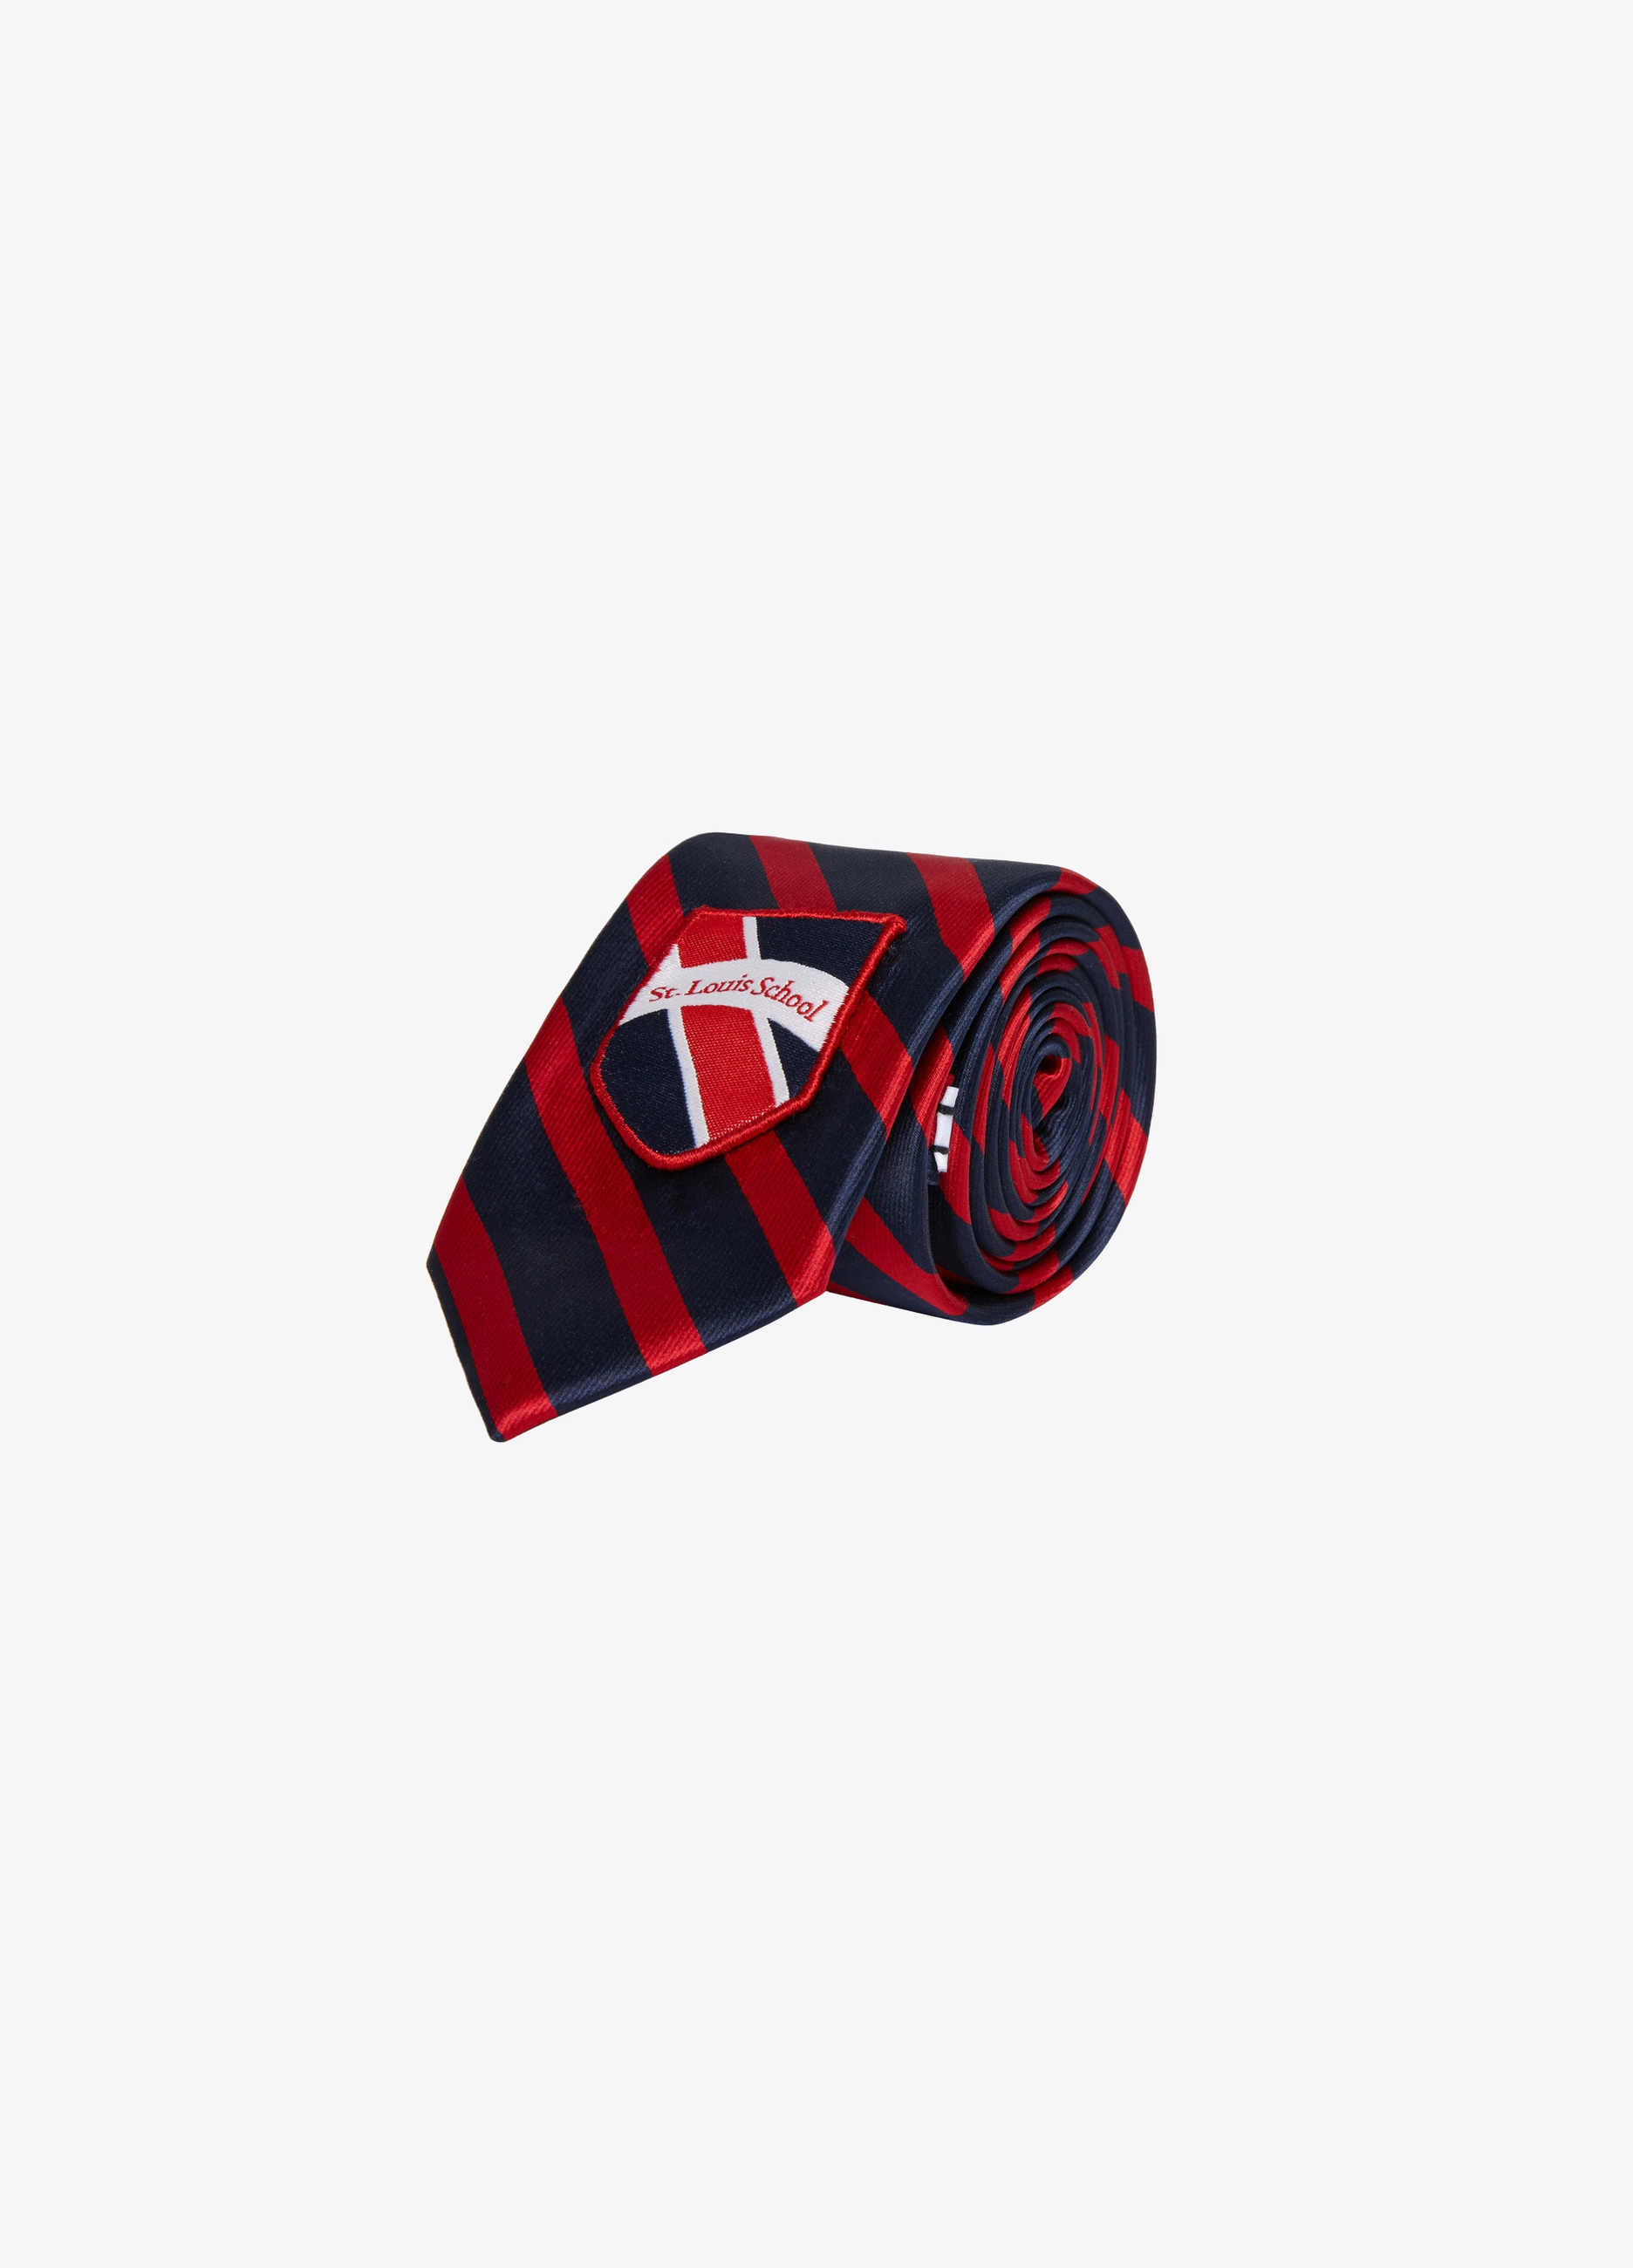 Two-tone tie with patch